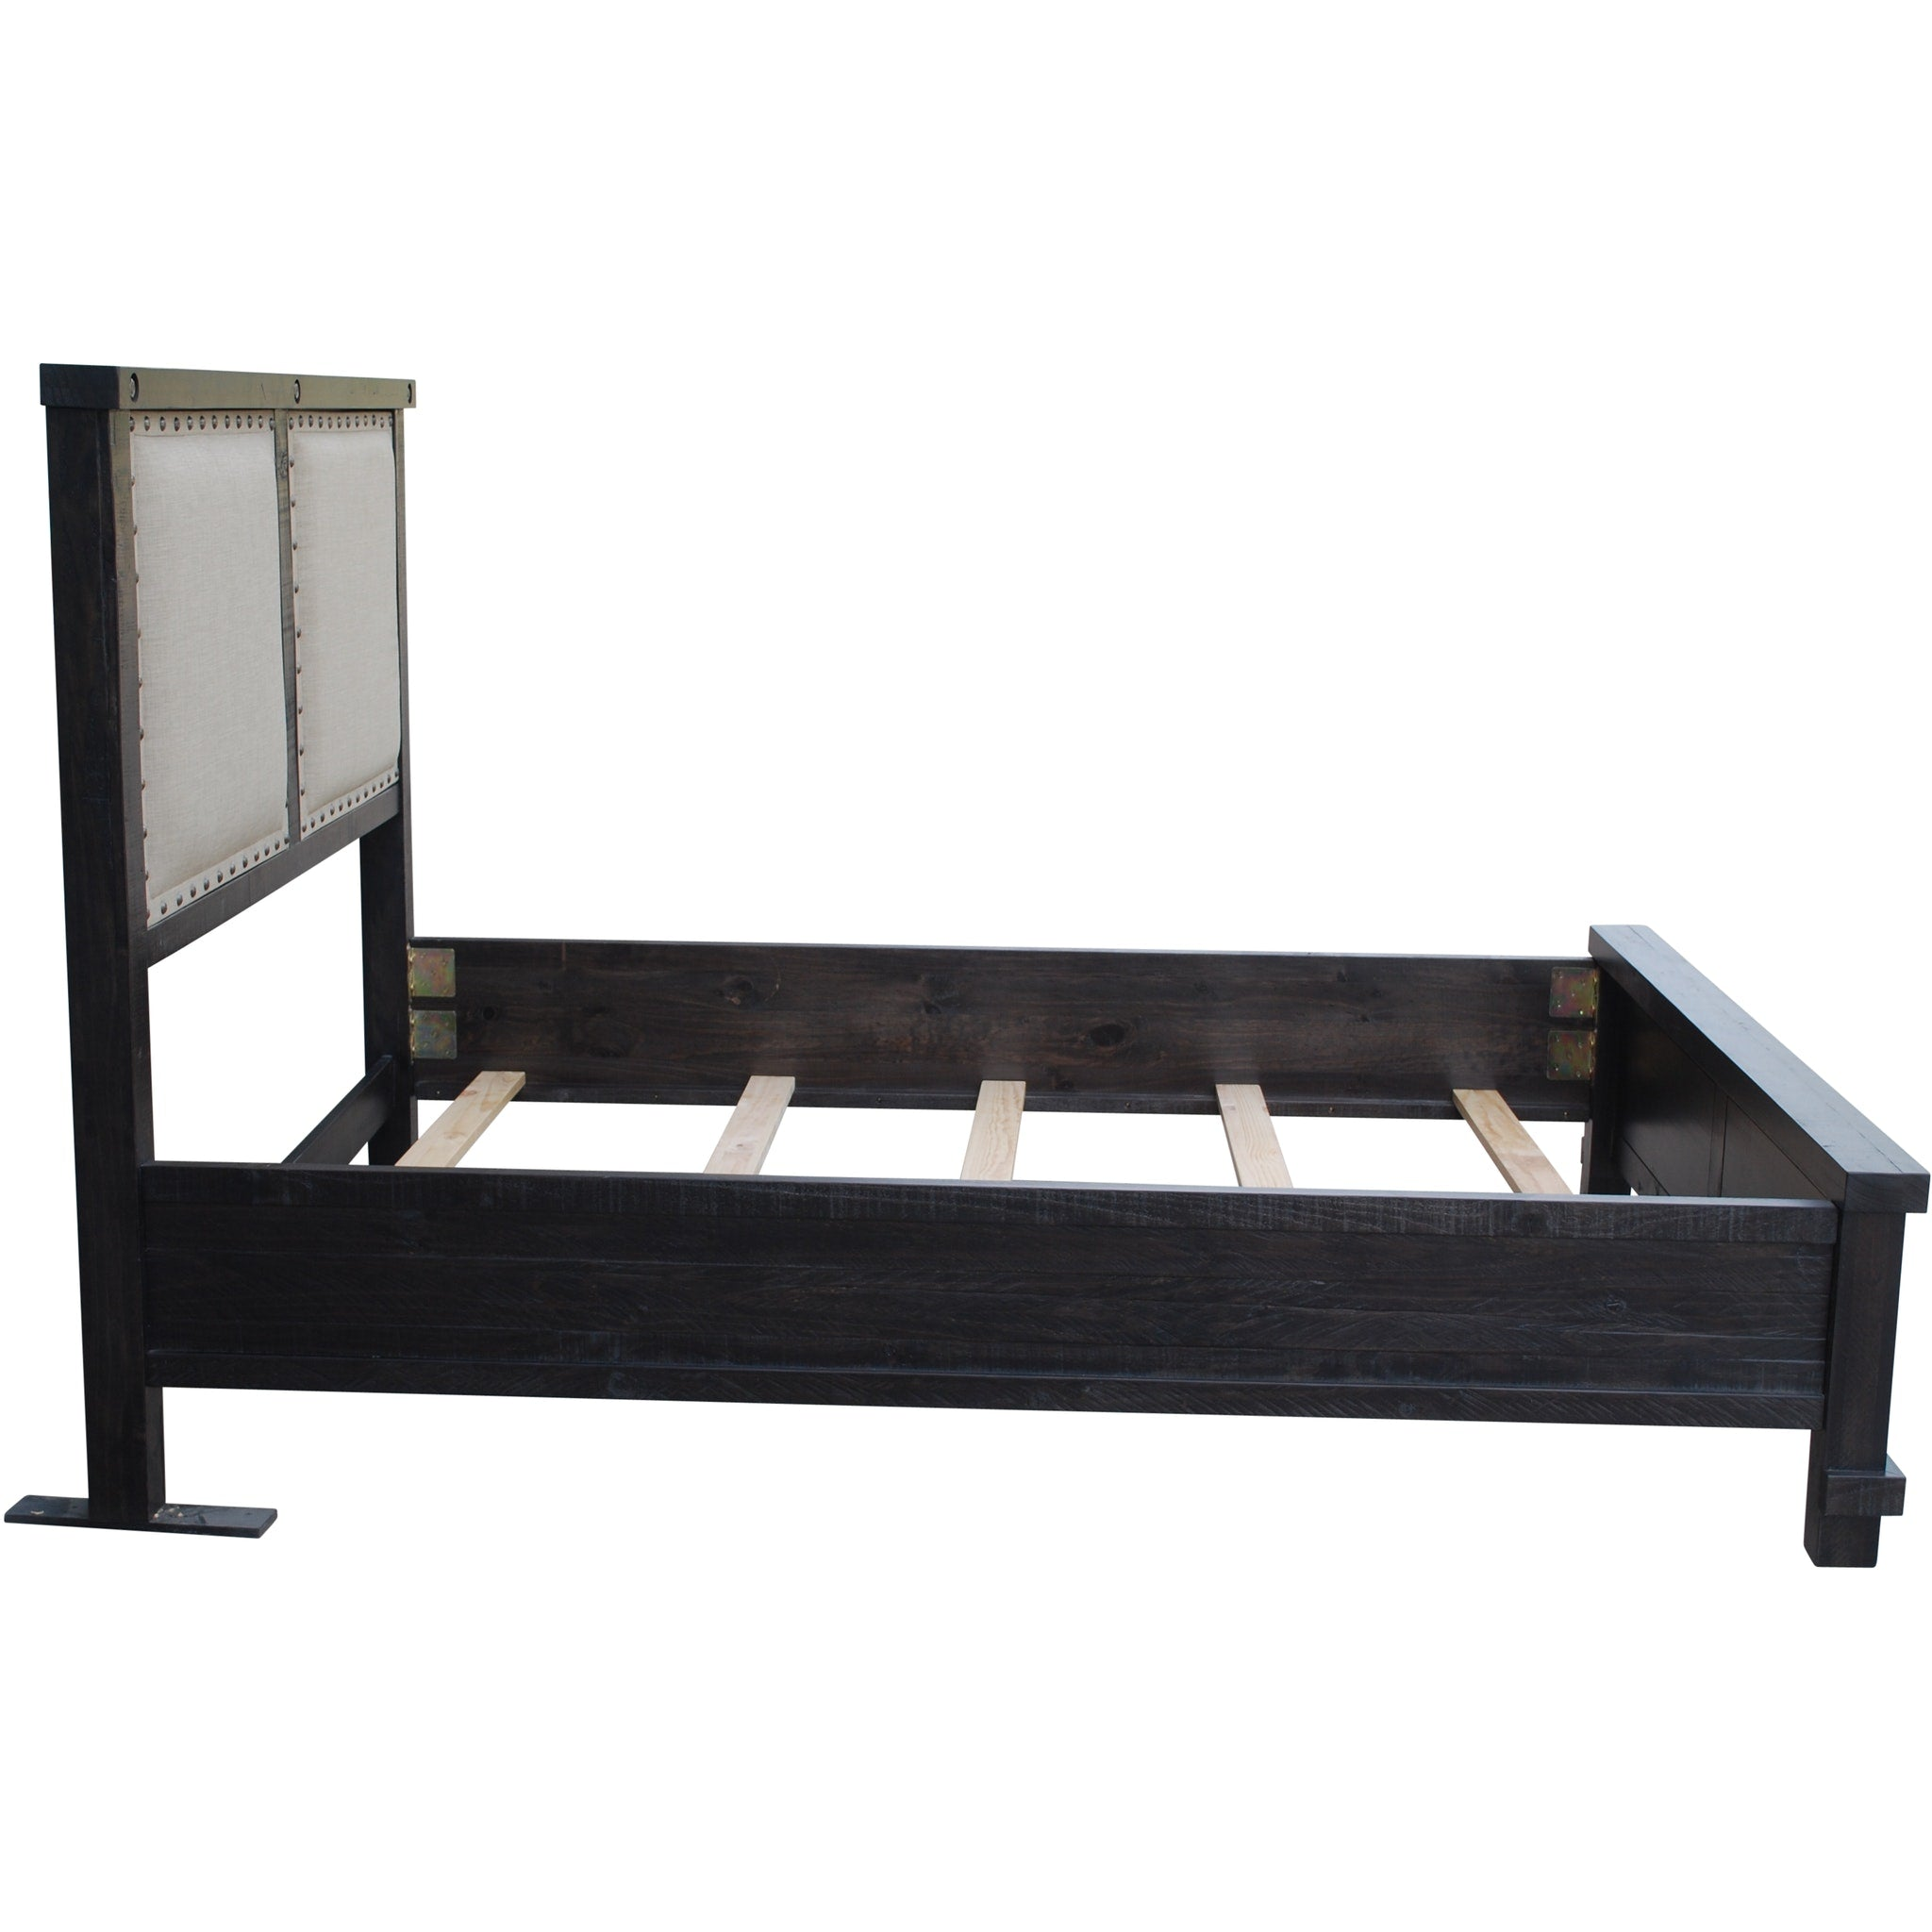 Yosemite Full-size Upholstered Panel Bed in Café